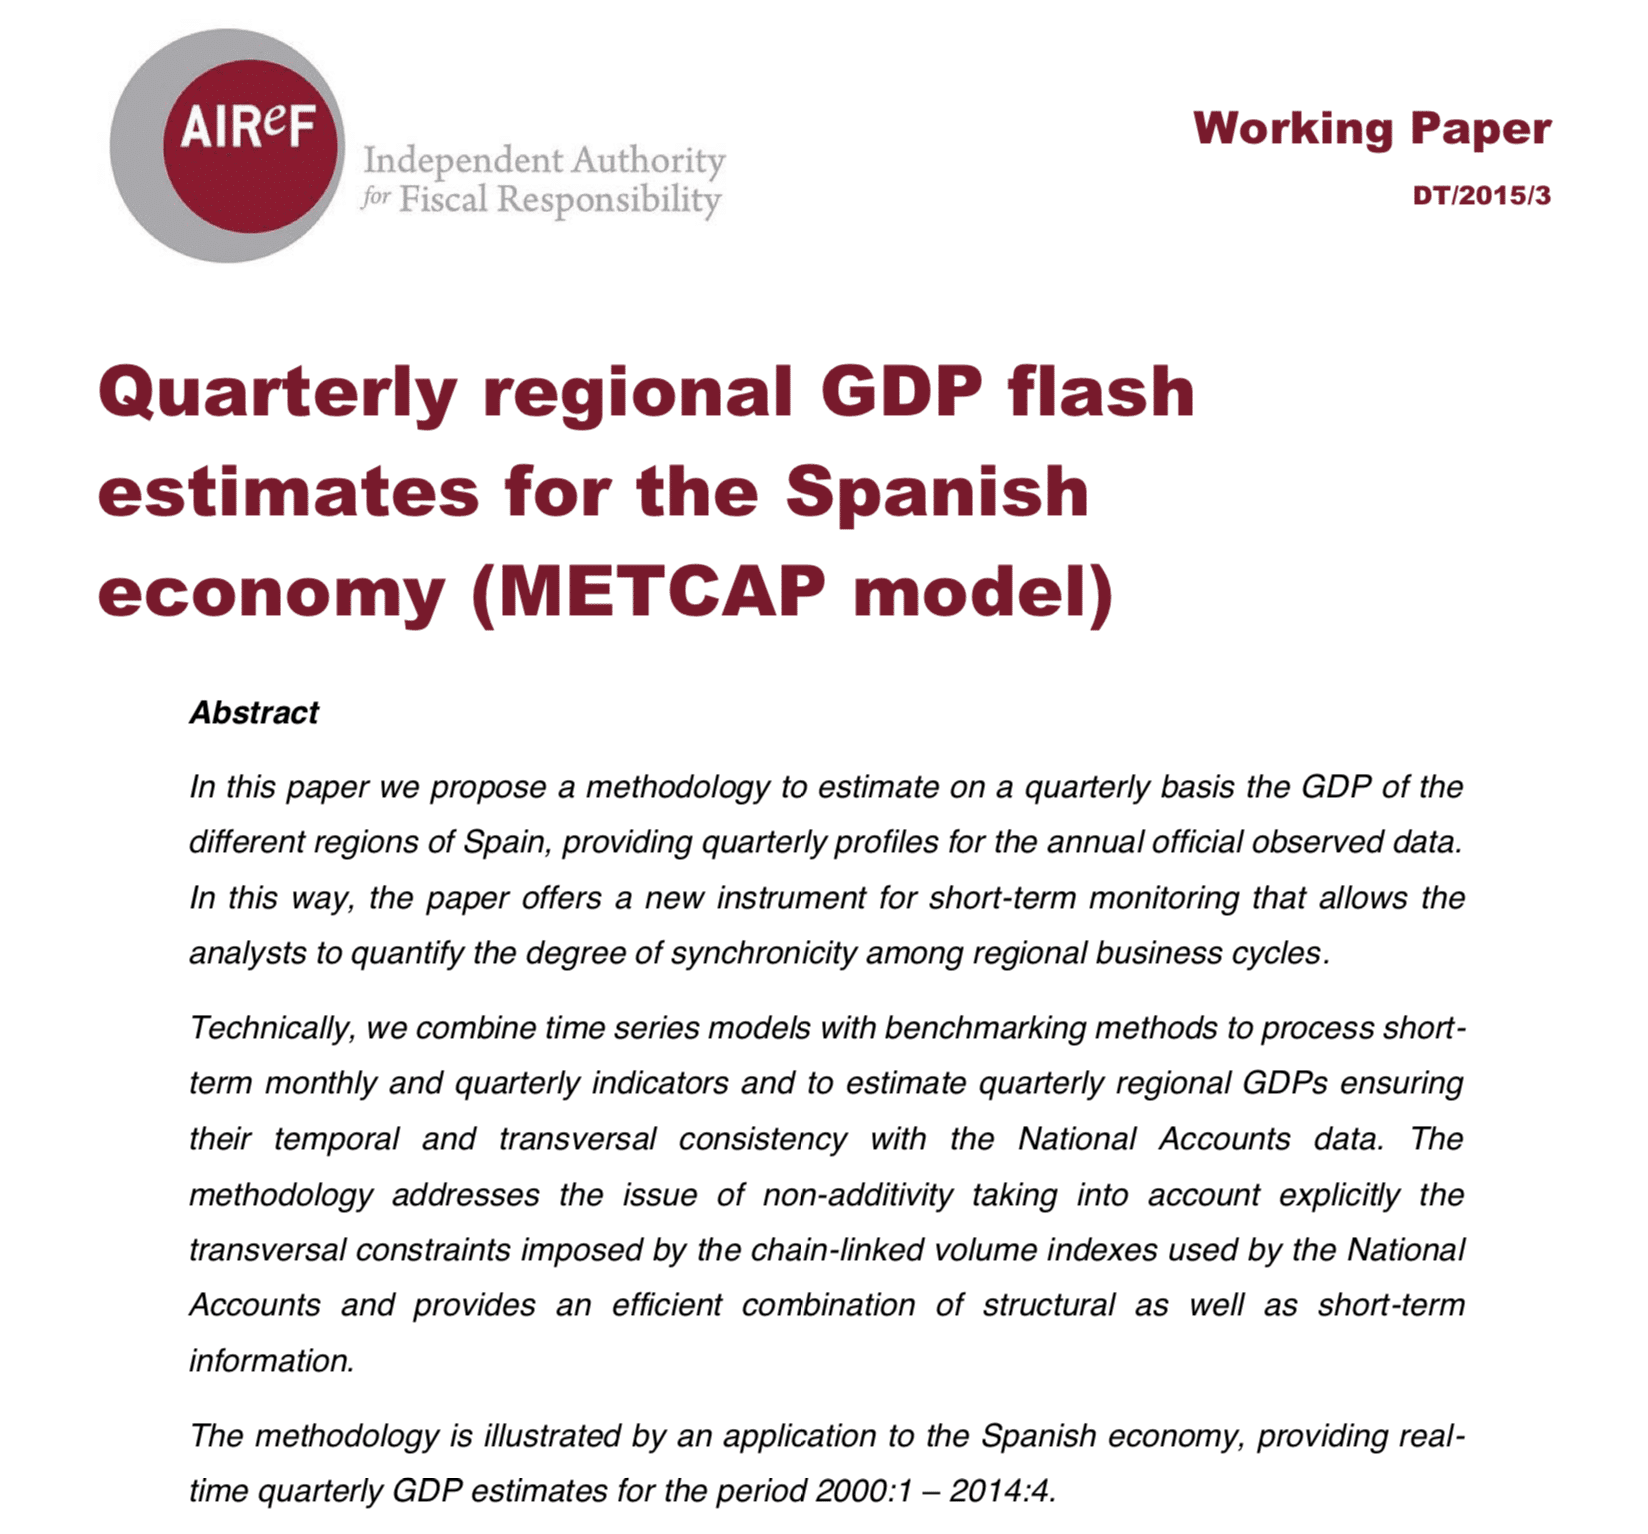 Quarterly regional GDP flash estimates for the Spanish economy